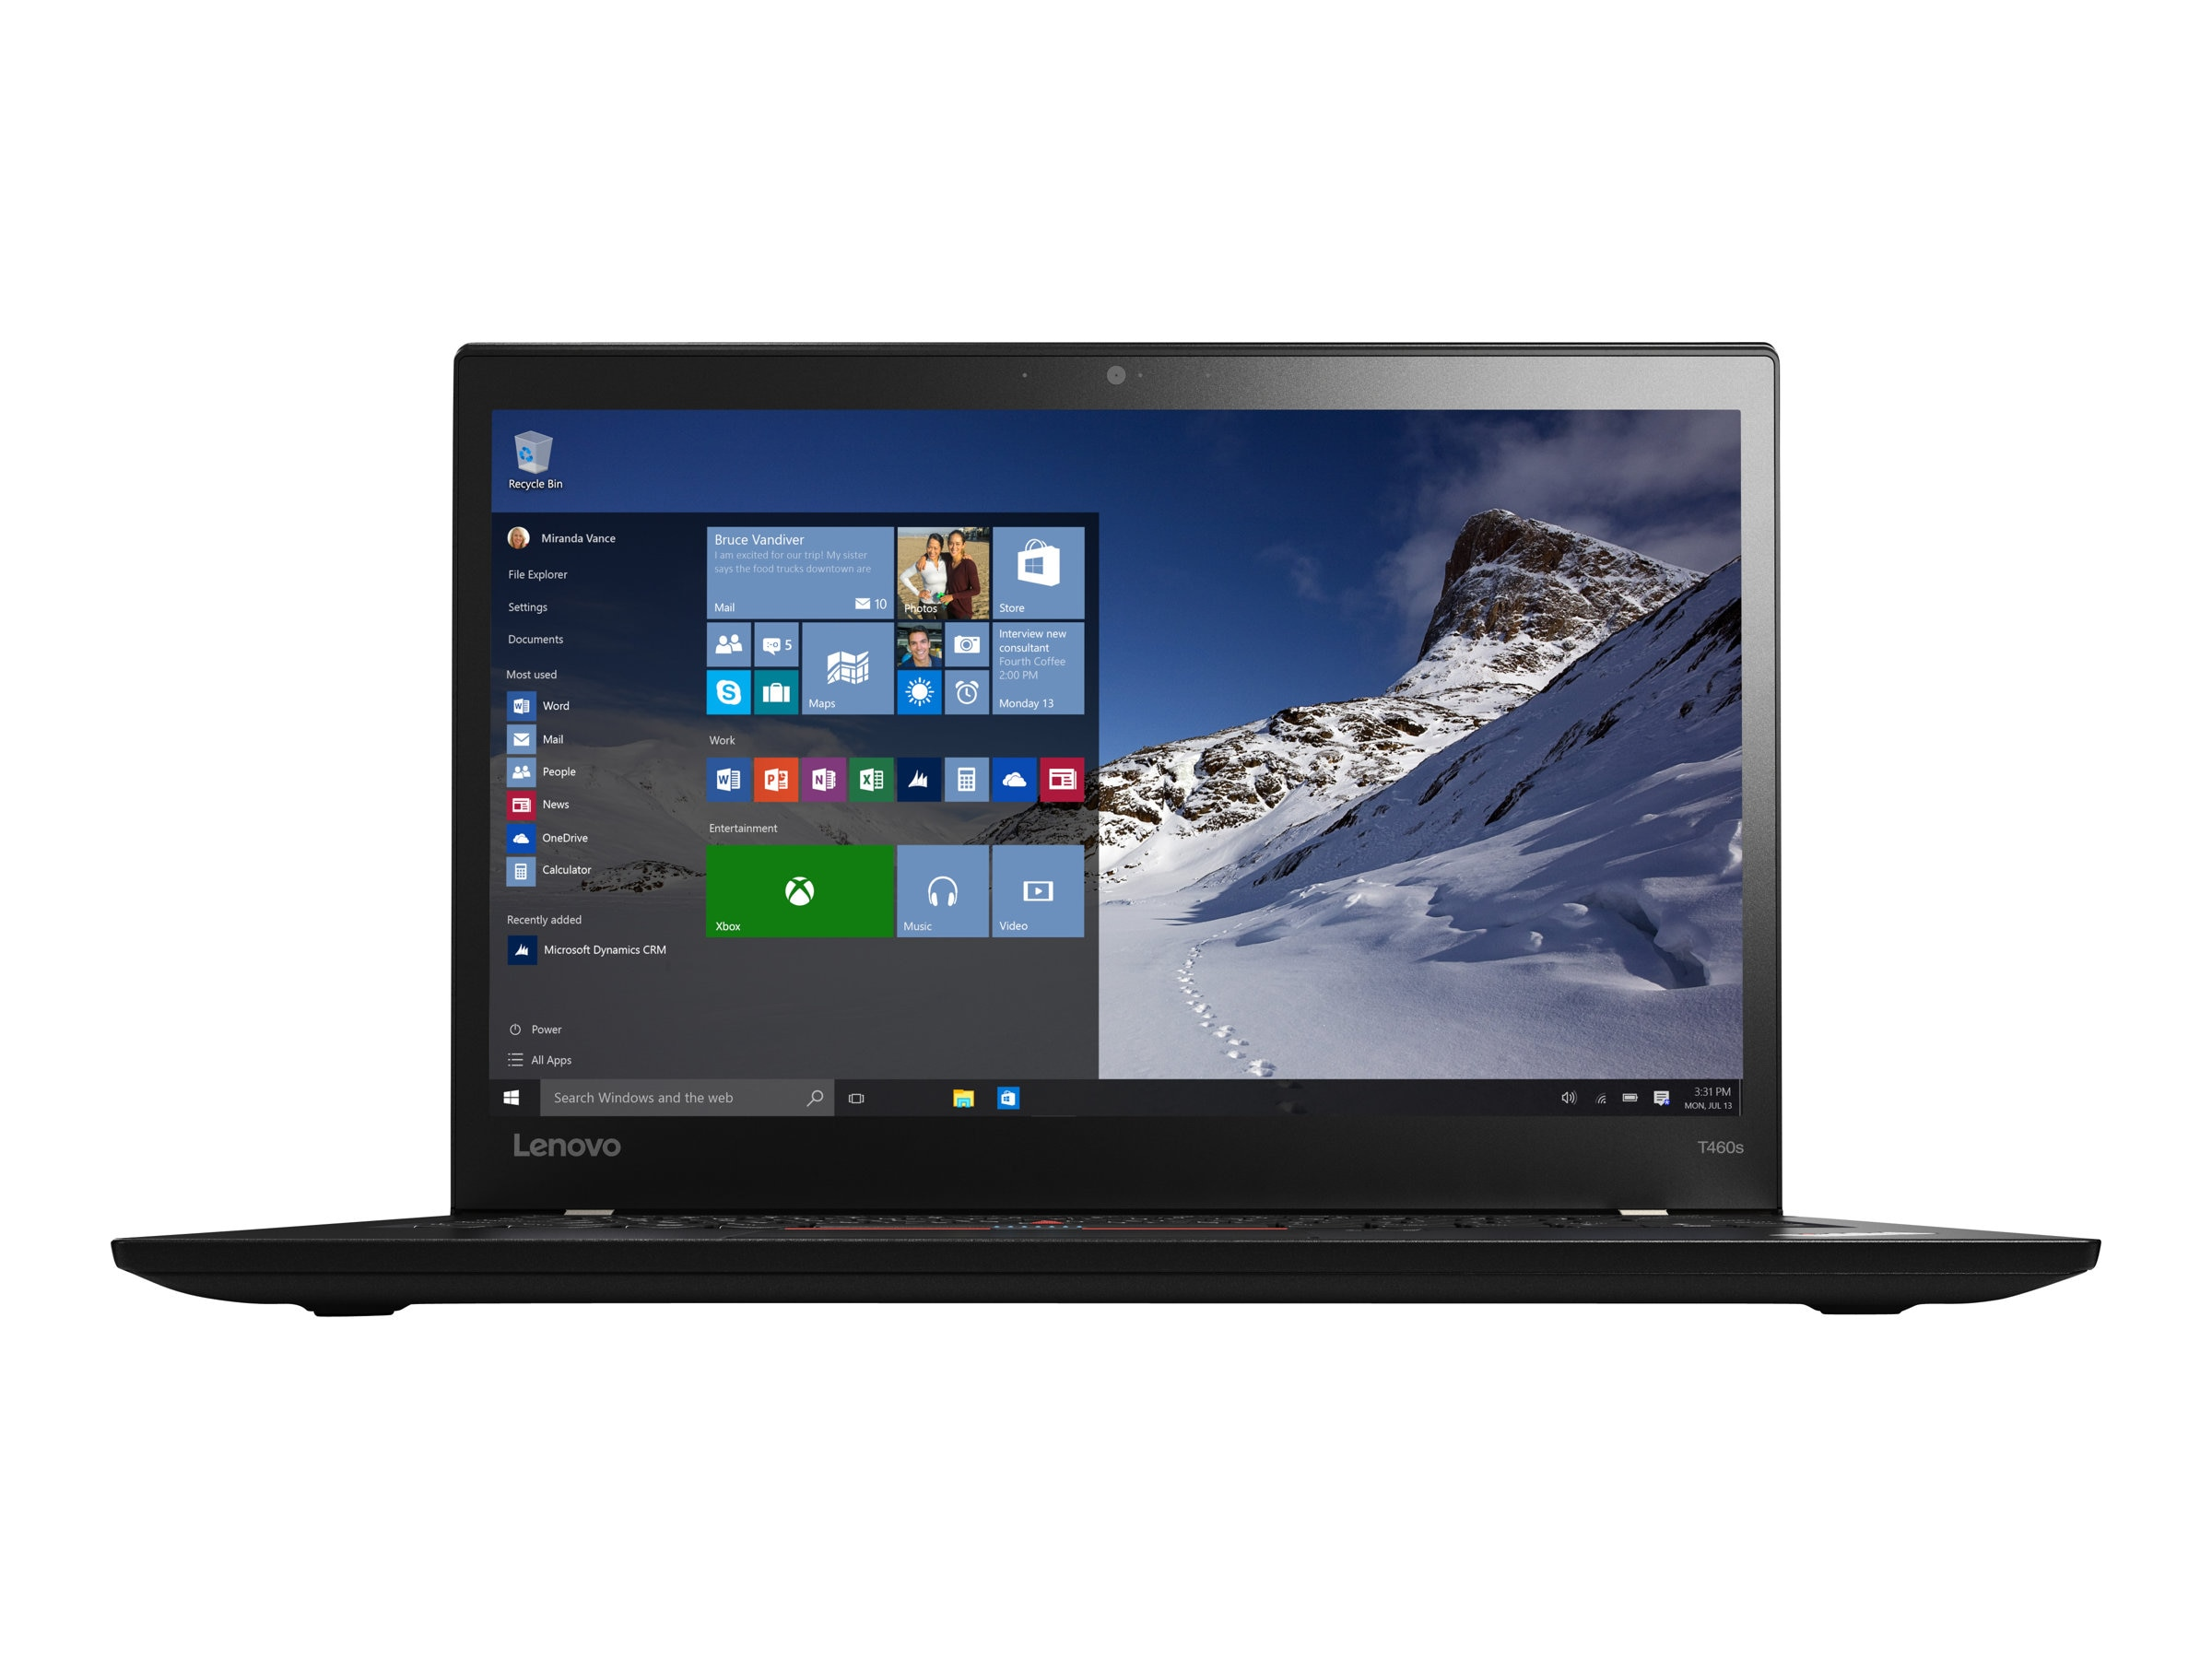 Lenovo TopSeller ThinkPad T460s 2.4GHz Core i5 14in display, 20F9003GUS, 32561638, Notebooks